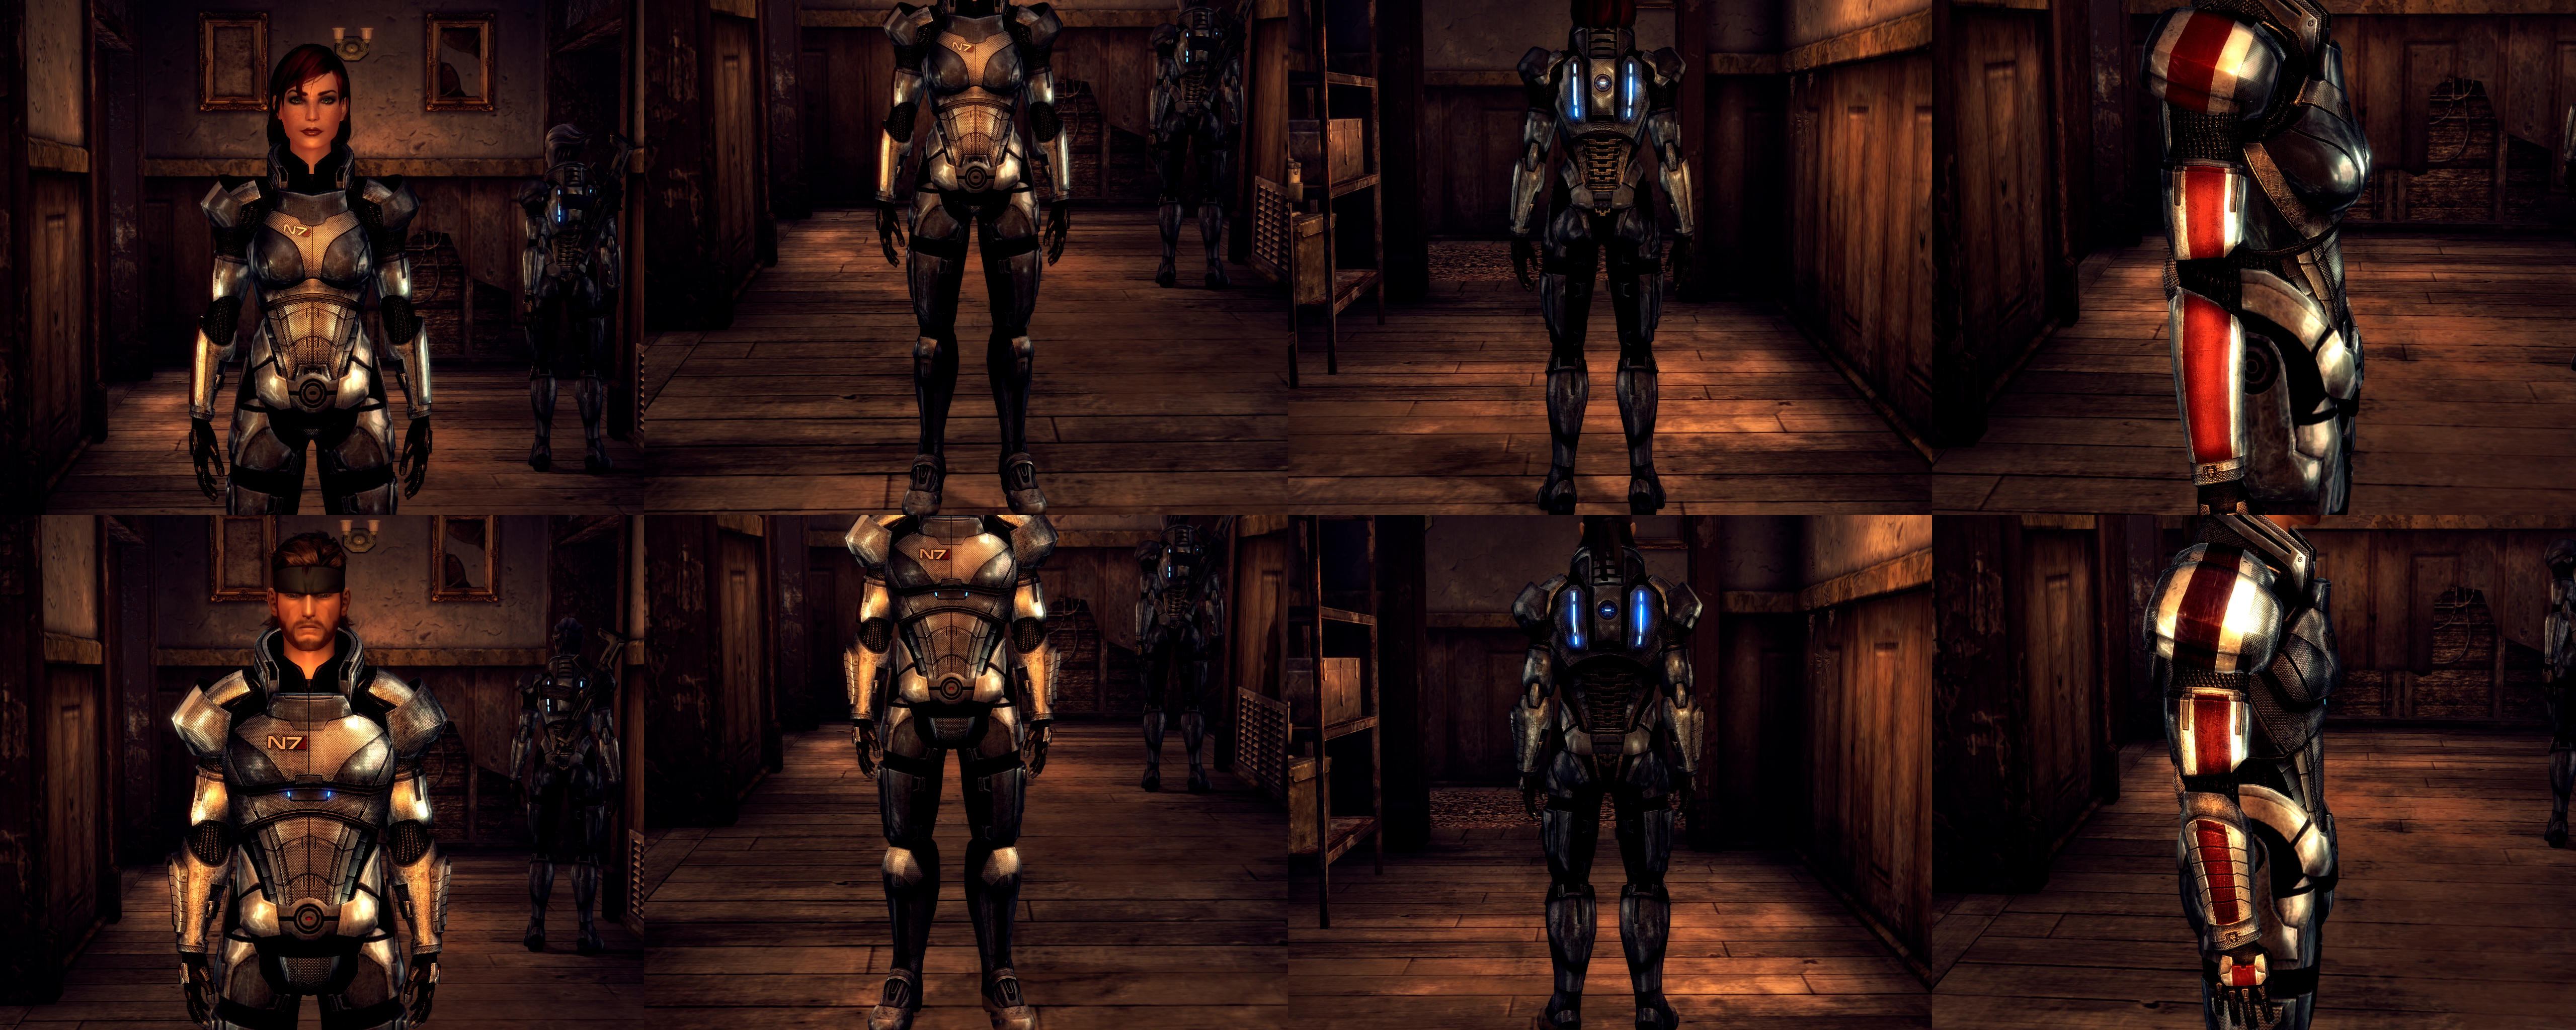 Fallout New Vegas Commander Shepard S N7 Armor By